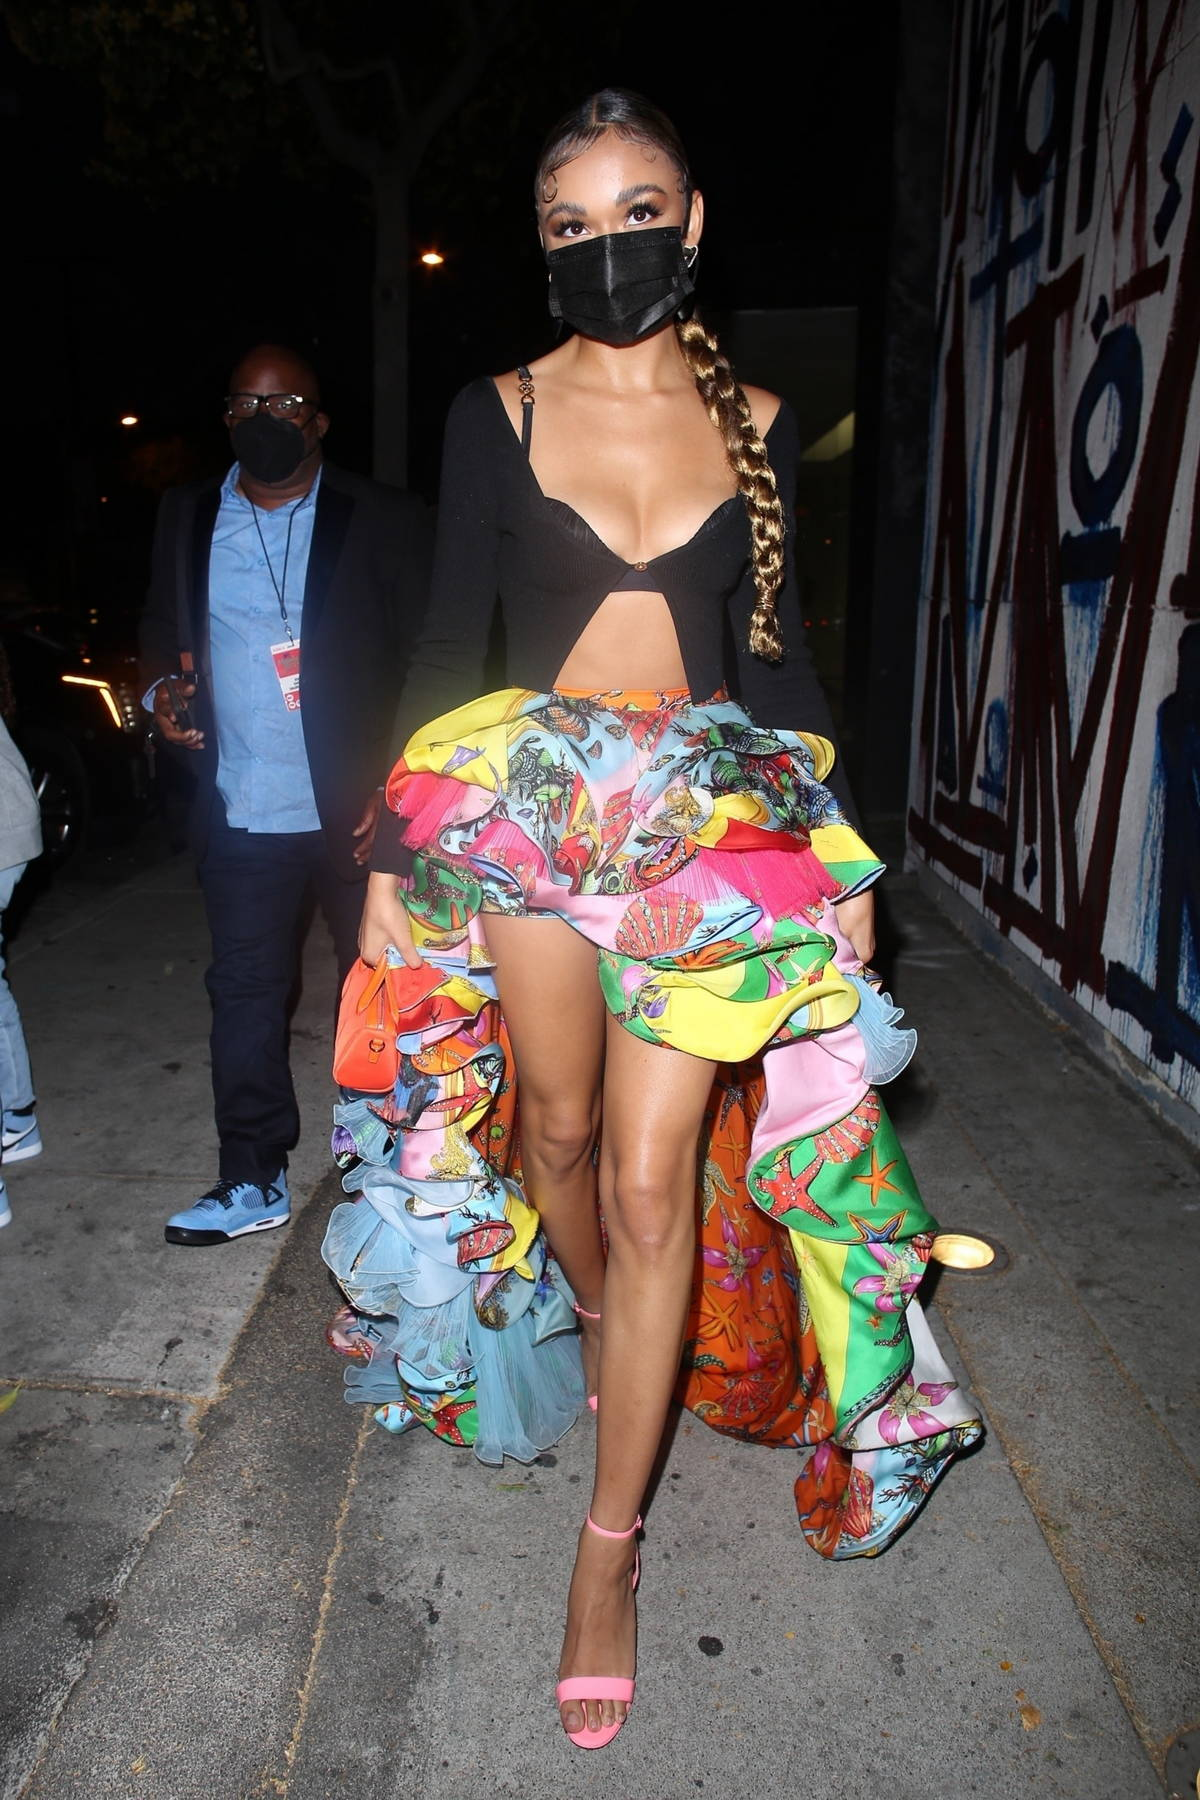 Madison Bailey dazzles in a colorful ensemble as she arrives at Craig's in West Hollywood, California